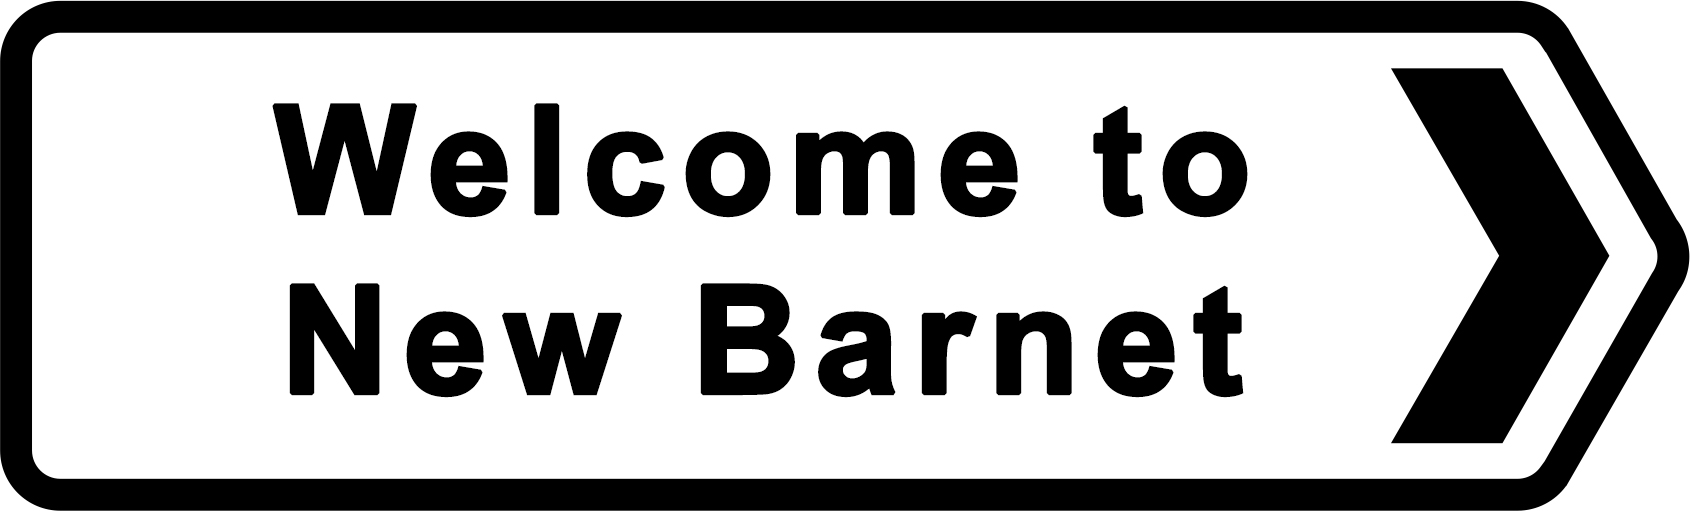 New Barnet railway station - Cheap Driving Schools Lessons in New Barnet,EN4/EN5, London borough of Barnet, Hertfordshire, Greater London